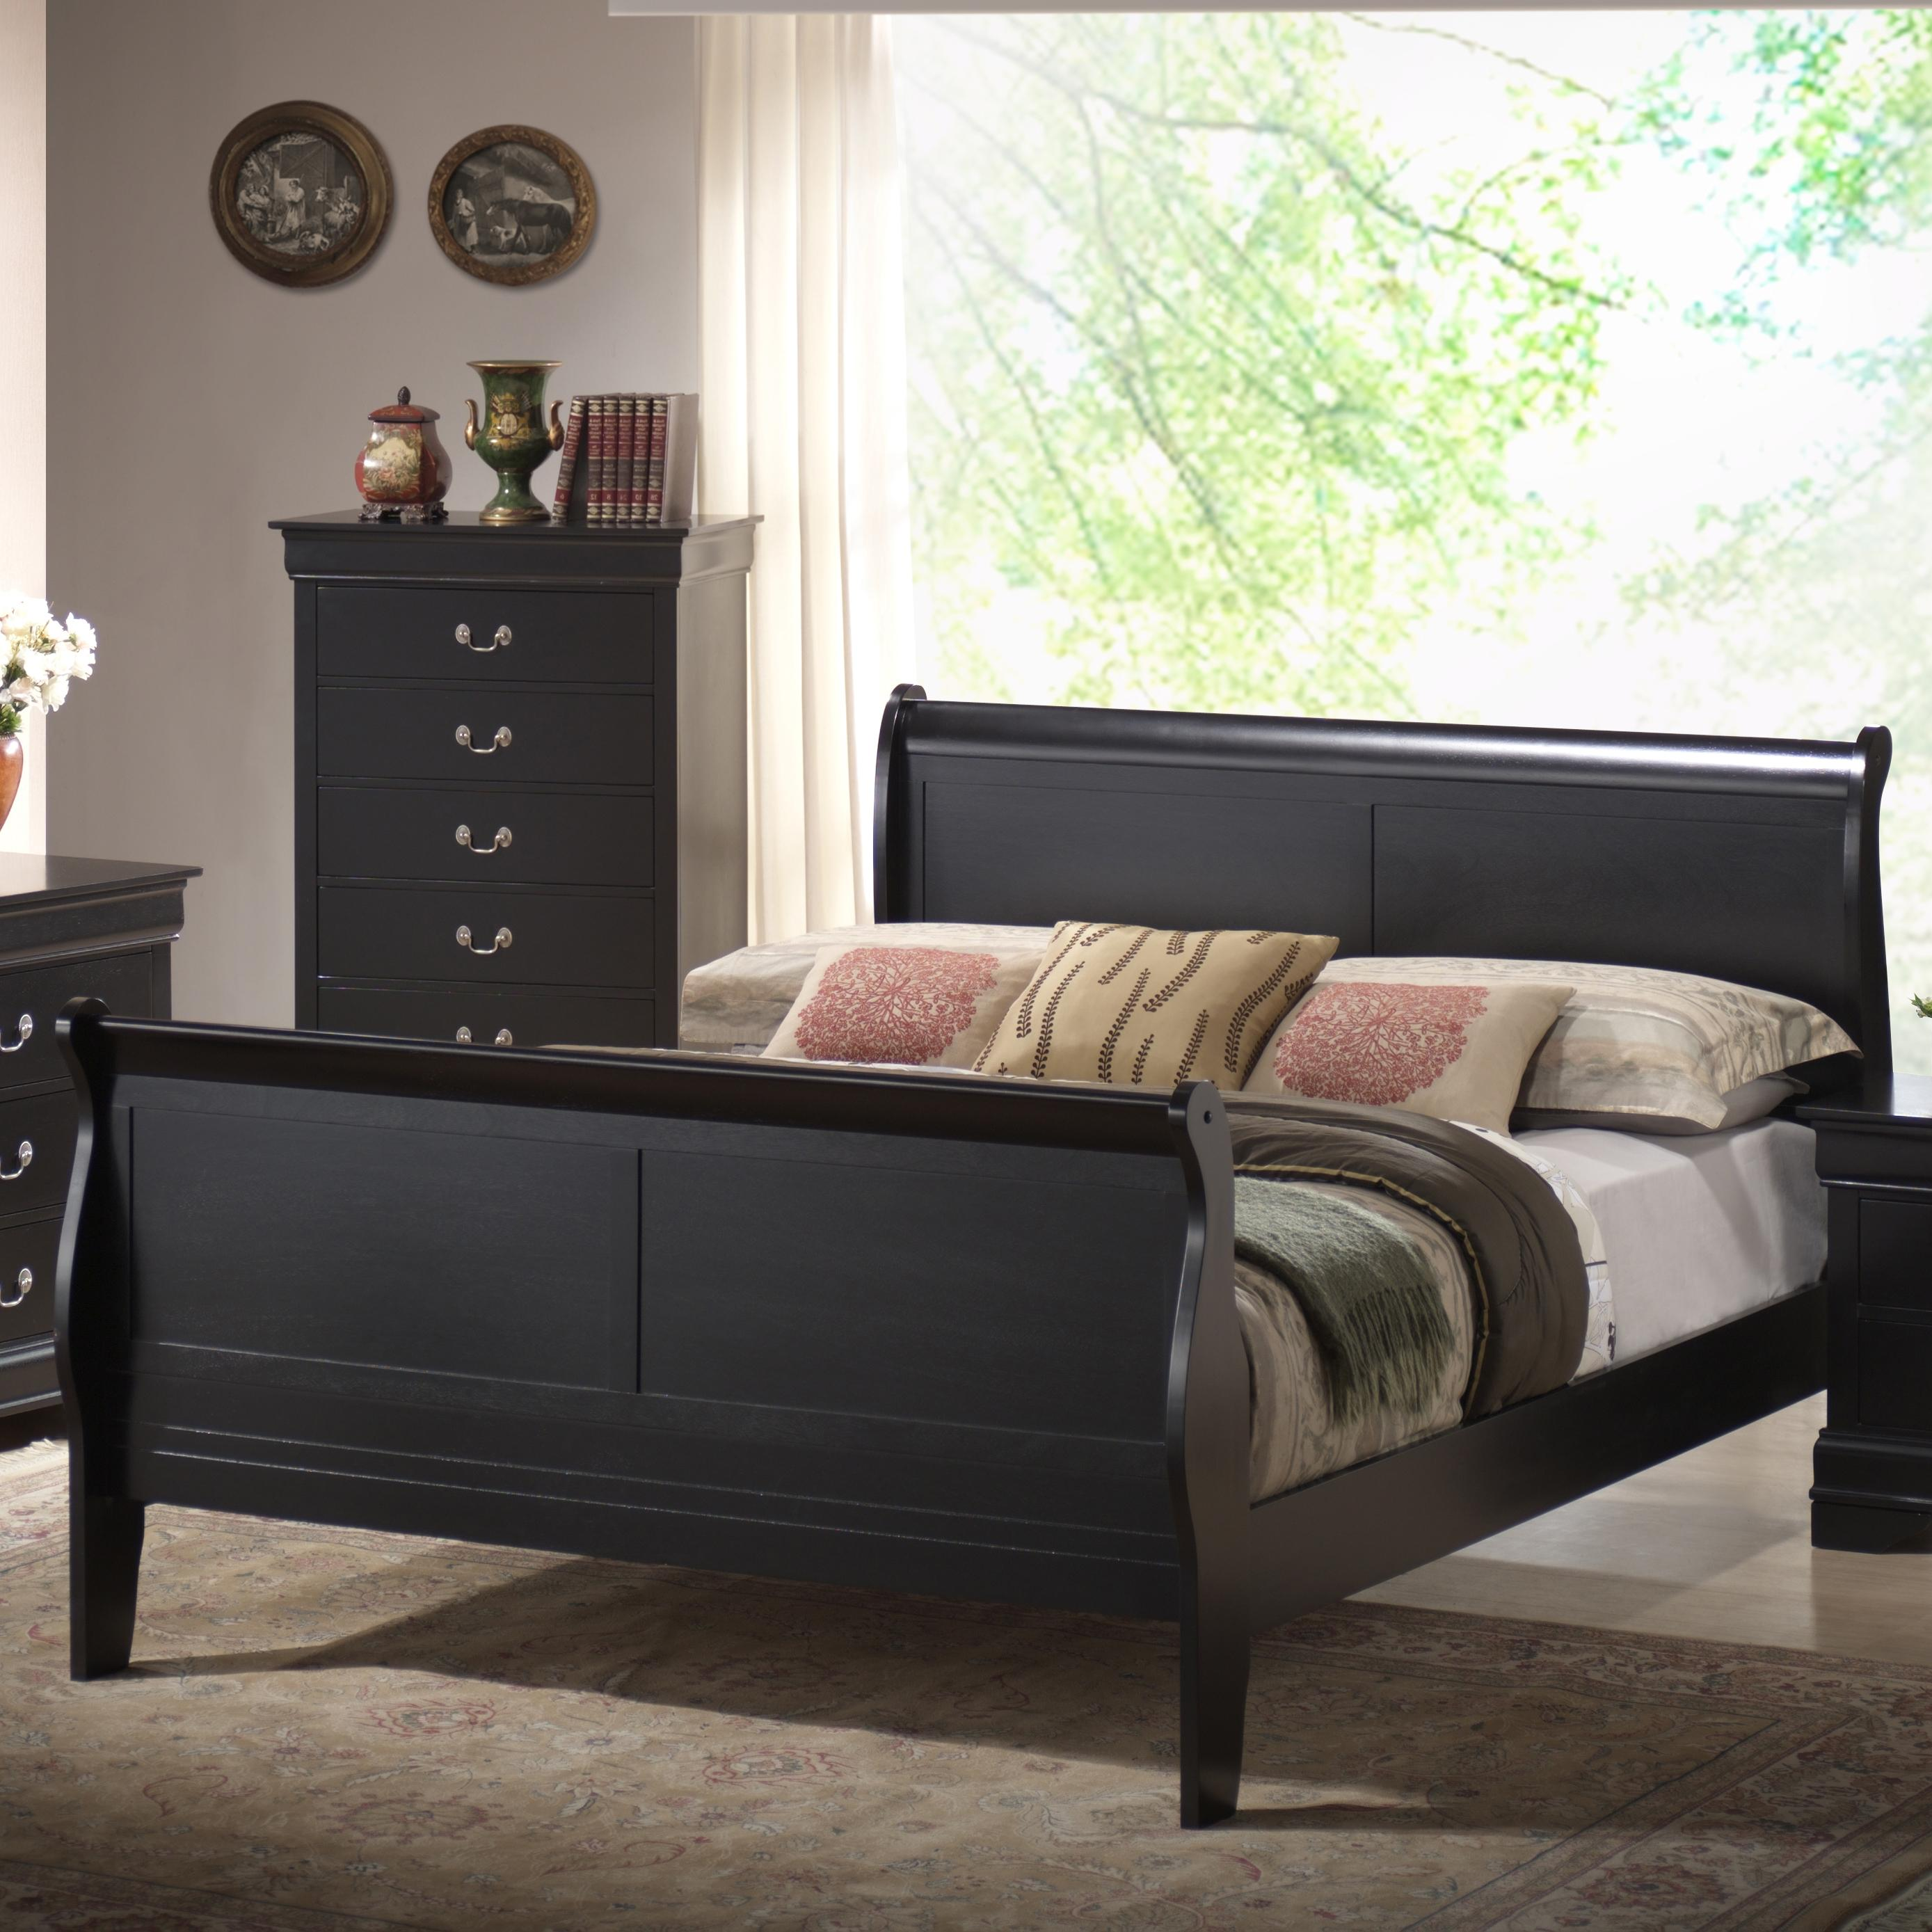 Lifestyle Louis Phillipe King Sleigh Bed - Item Number: C5934A-KSA-XXBL+KXP-XXBL